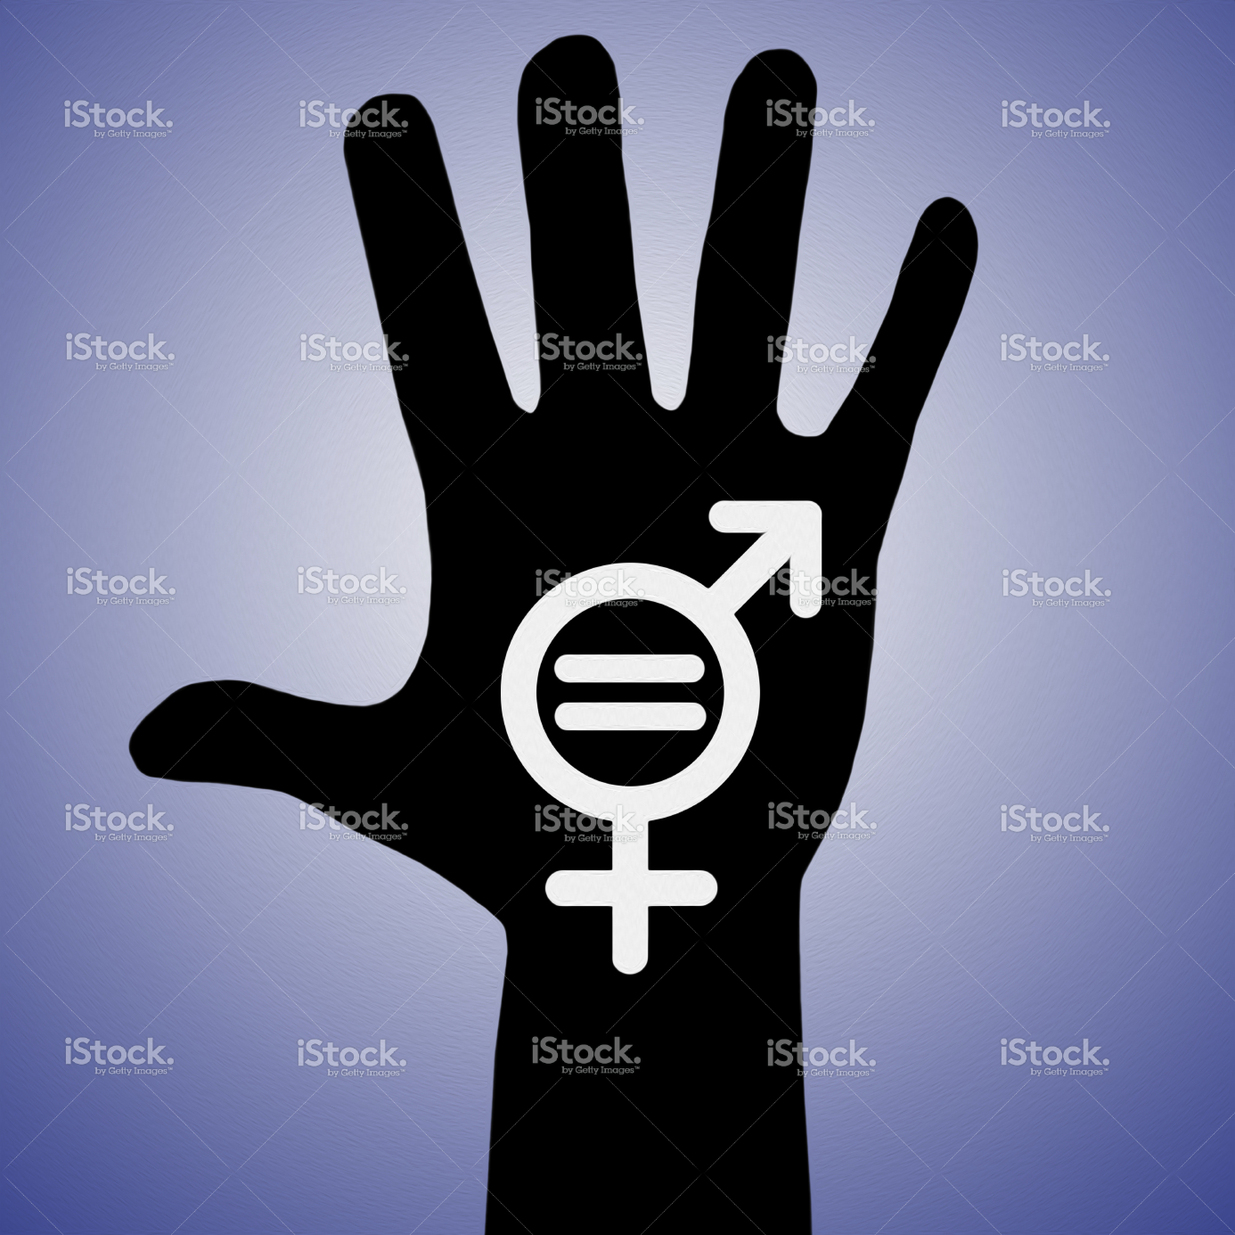 stock-photo-82255913-gender-equality